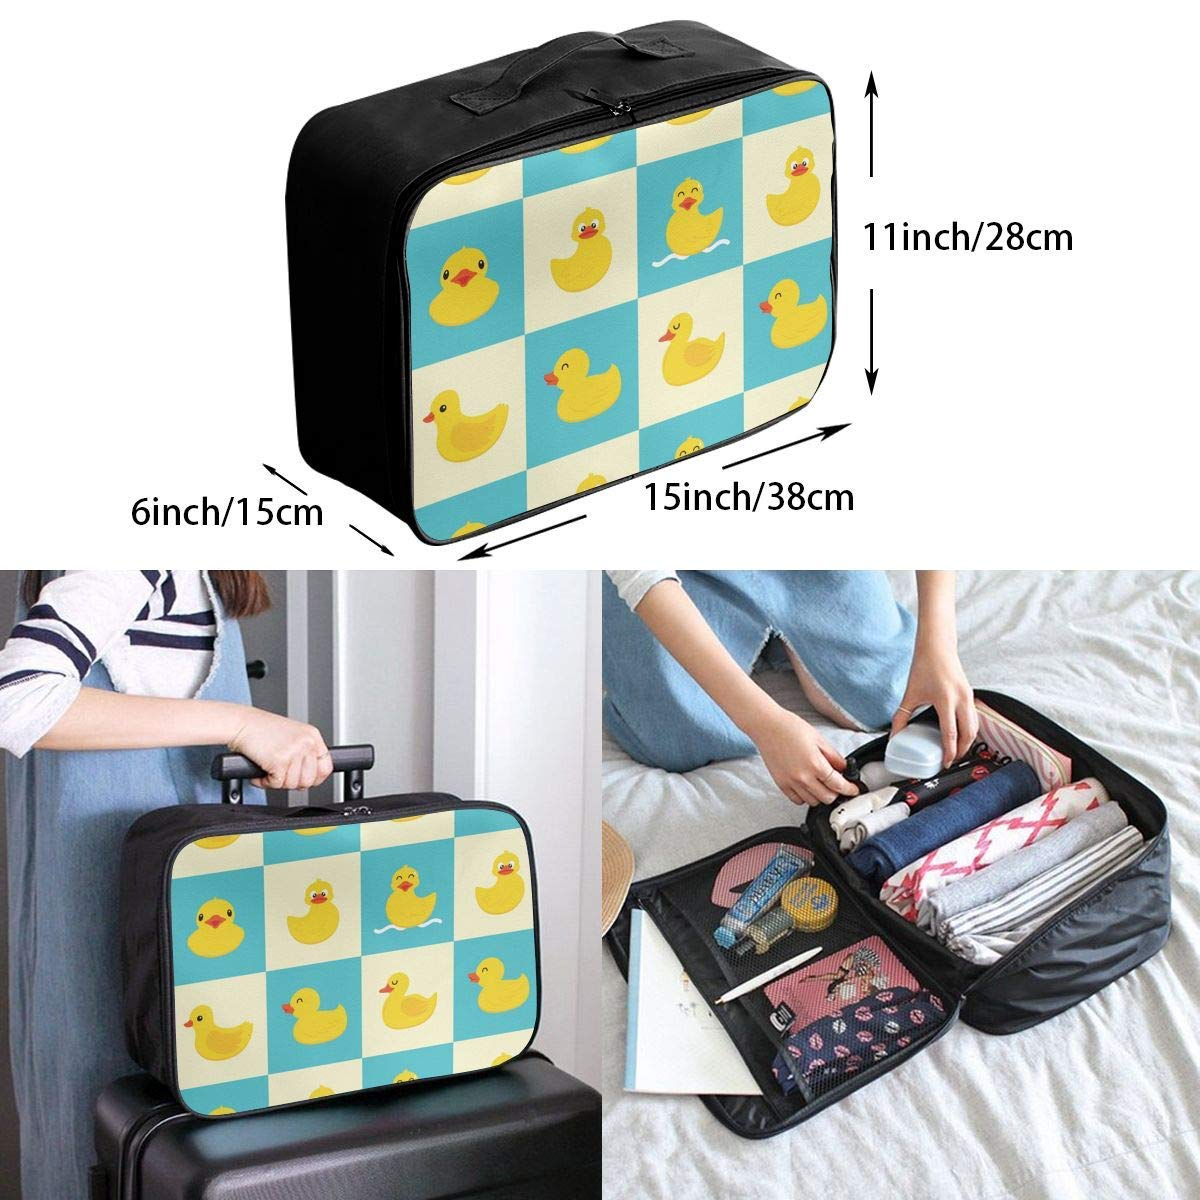 JTRVW Luggage Bags for Travel Travel Lightweight Waterproof Foldable Storage Carry Luggage Duffle Tote Bag Funny Rubber Duck